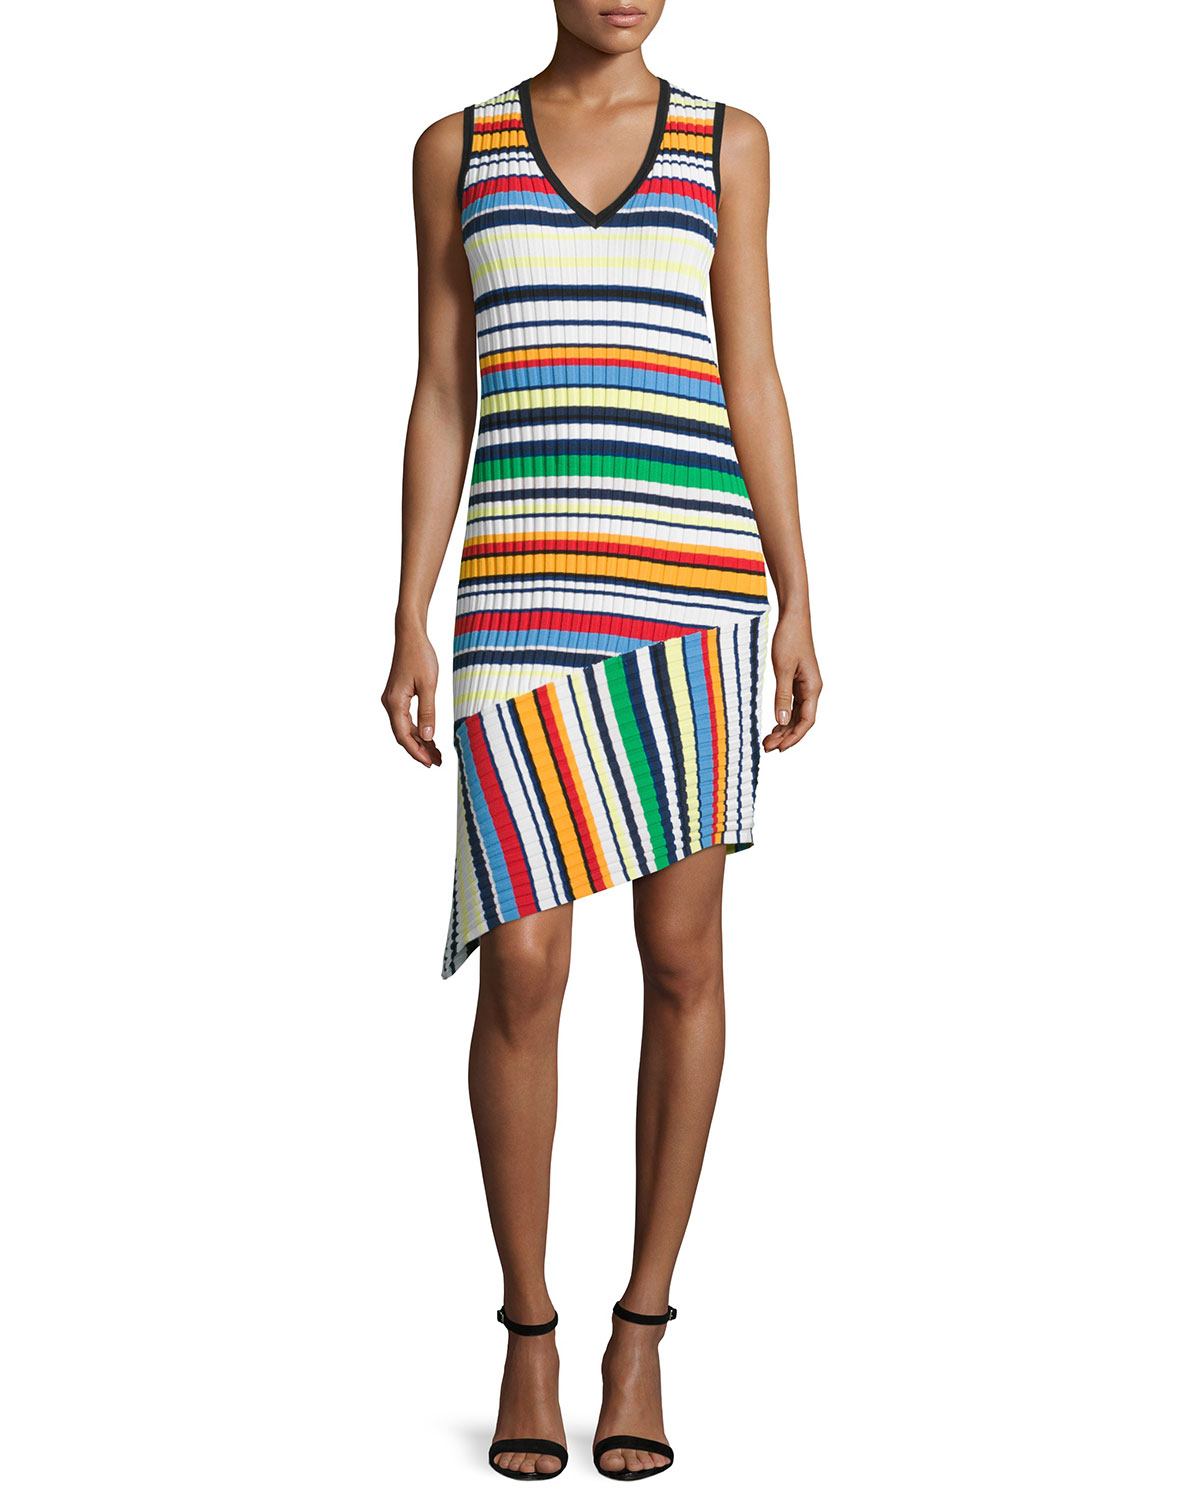 Directional Pop Stripe Dress, Size: L, Multi Colors - Milly